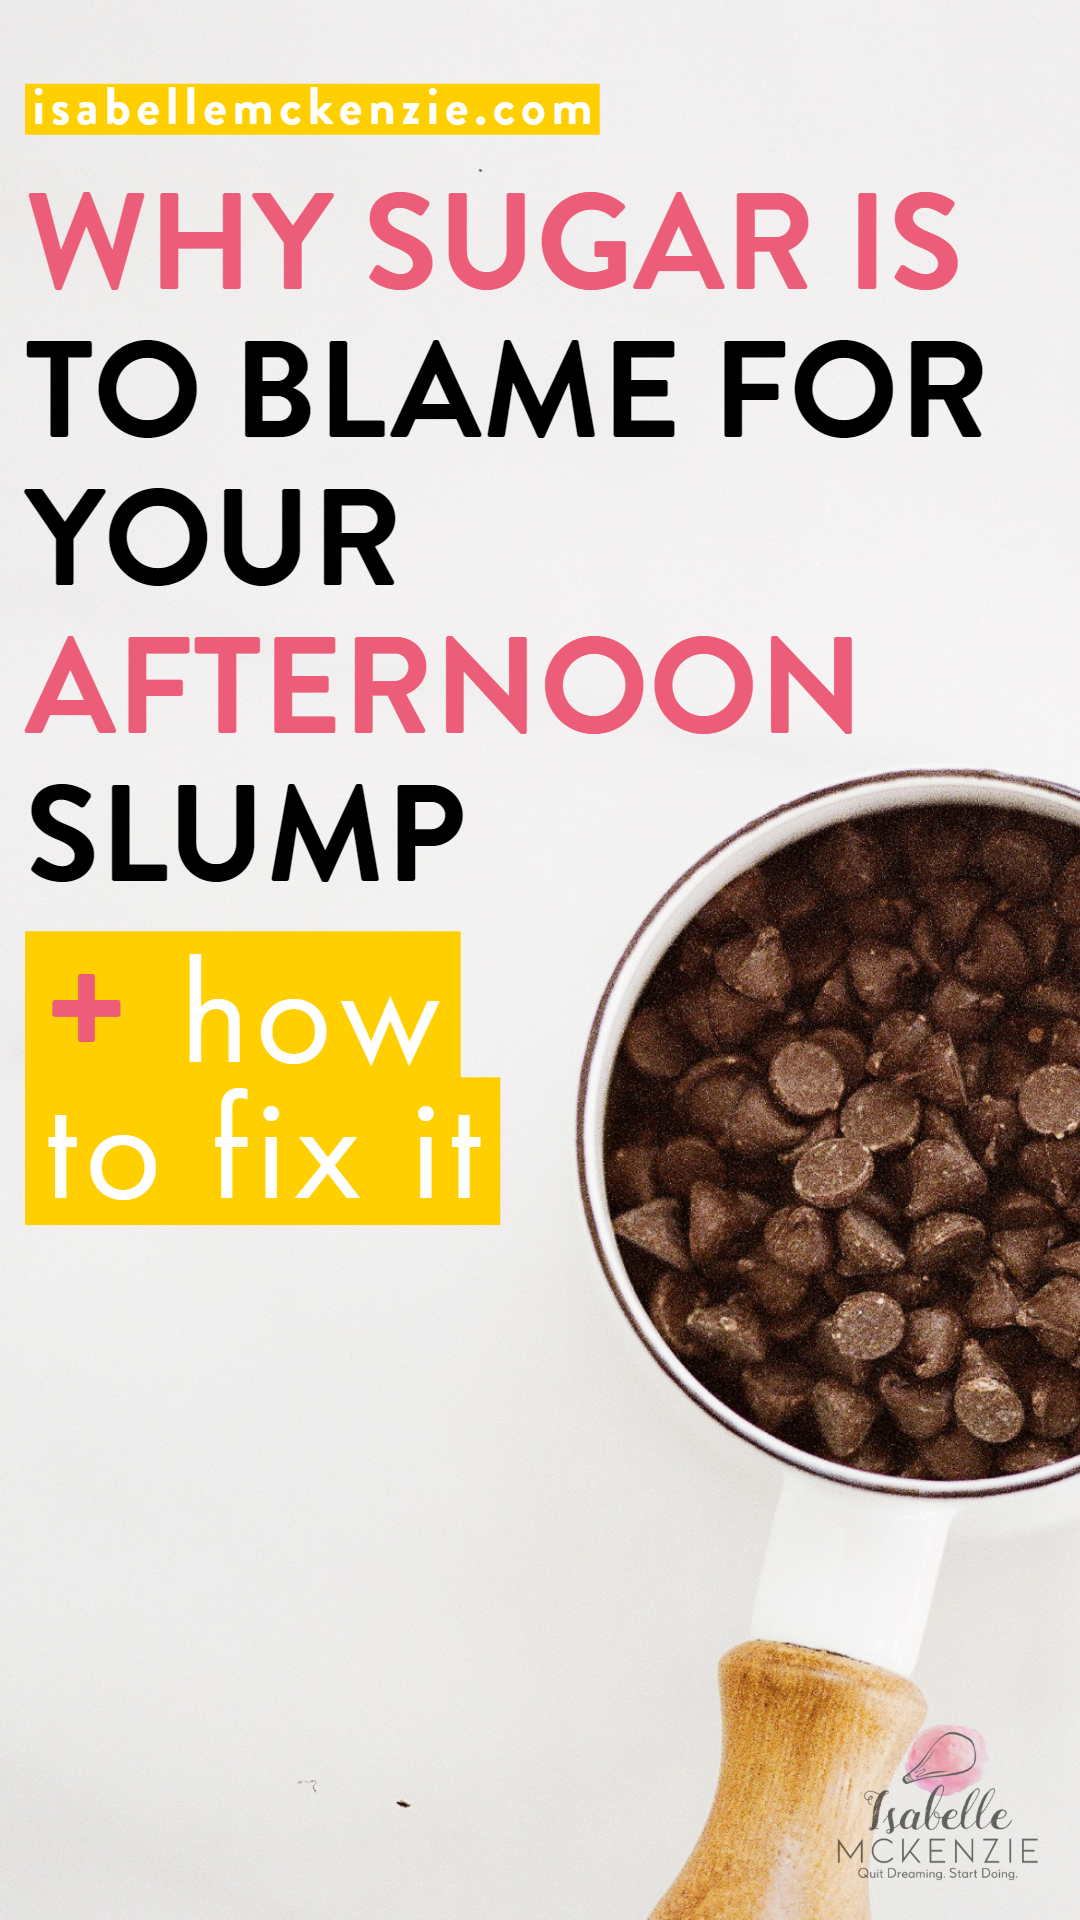 Why Sugar is to Blame for Your Afternoon Slump + How to Fix It - Isabelle McKenzie